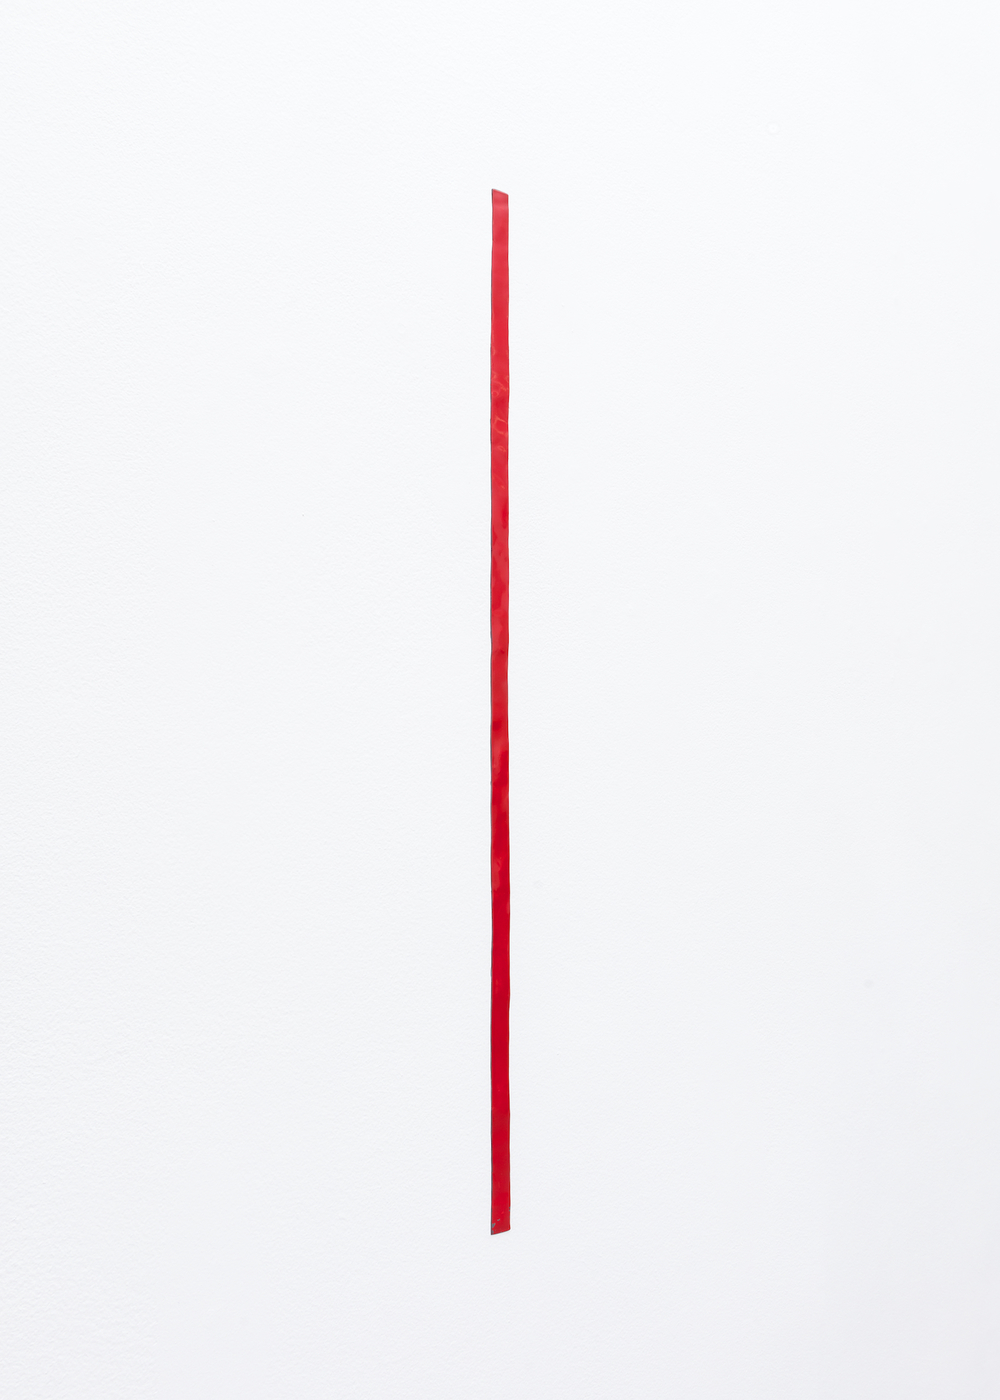 Nancy Brooks Brody  39 inch Measure (red 1)  2014 Oil enamel on lead embedded into wall 39h x 1w in NBB003